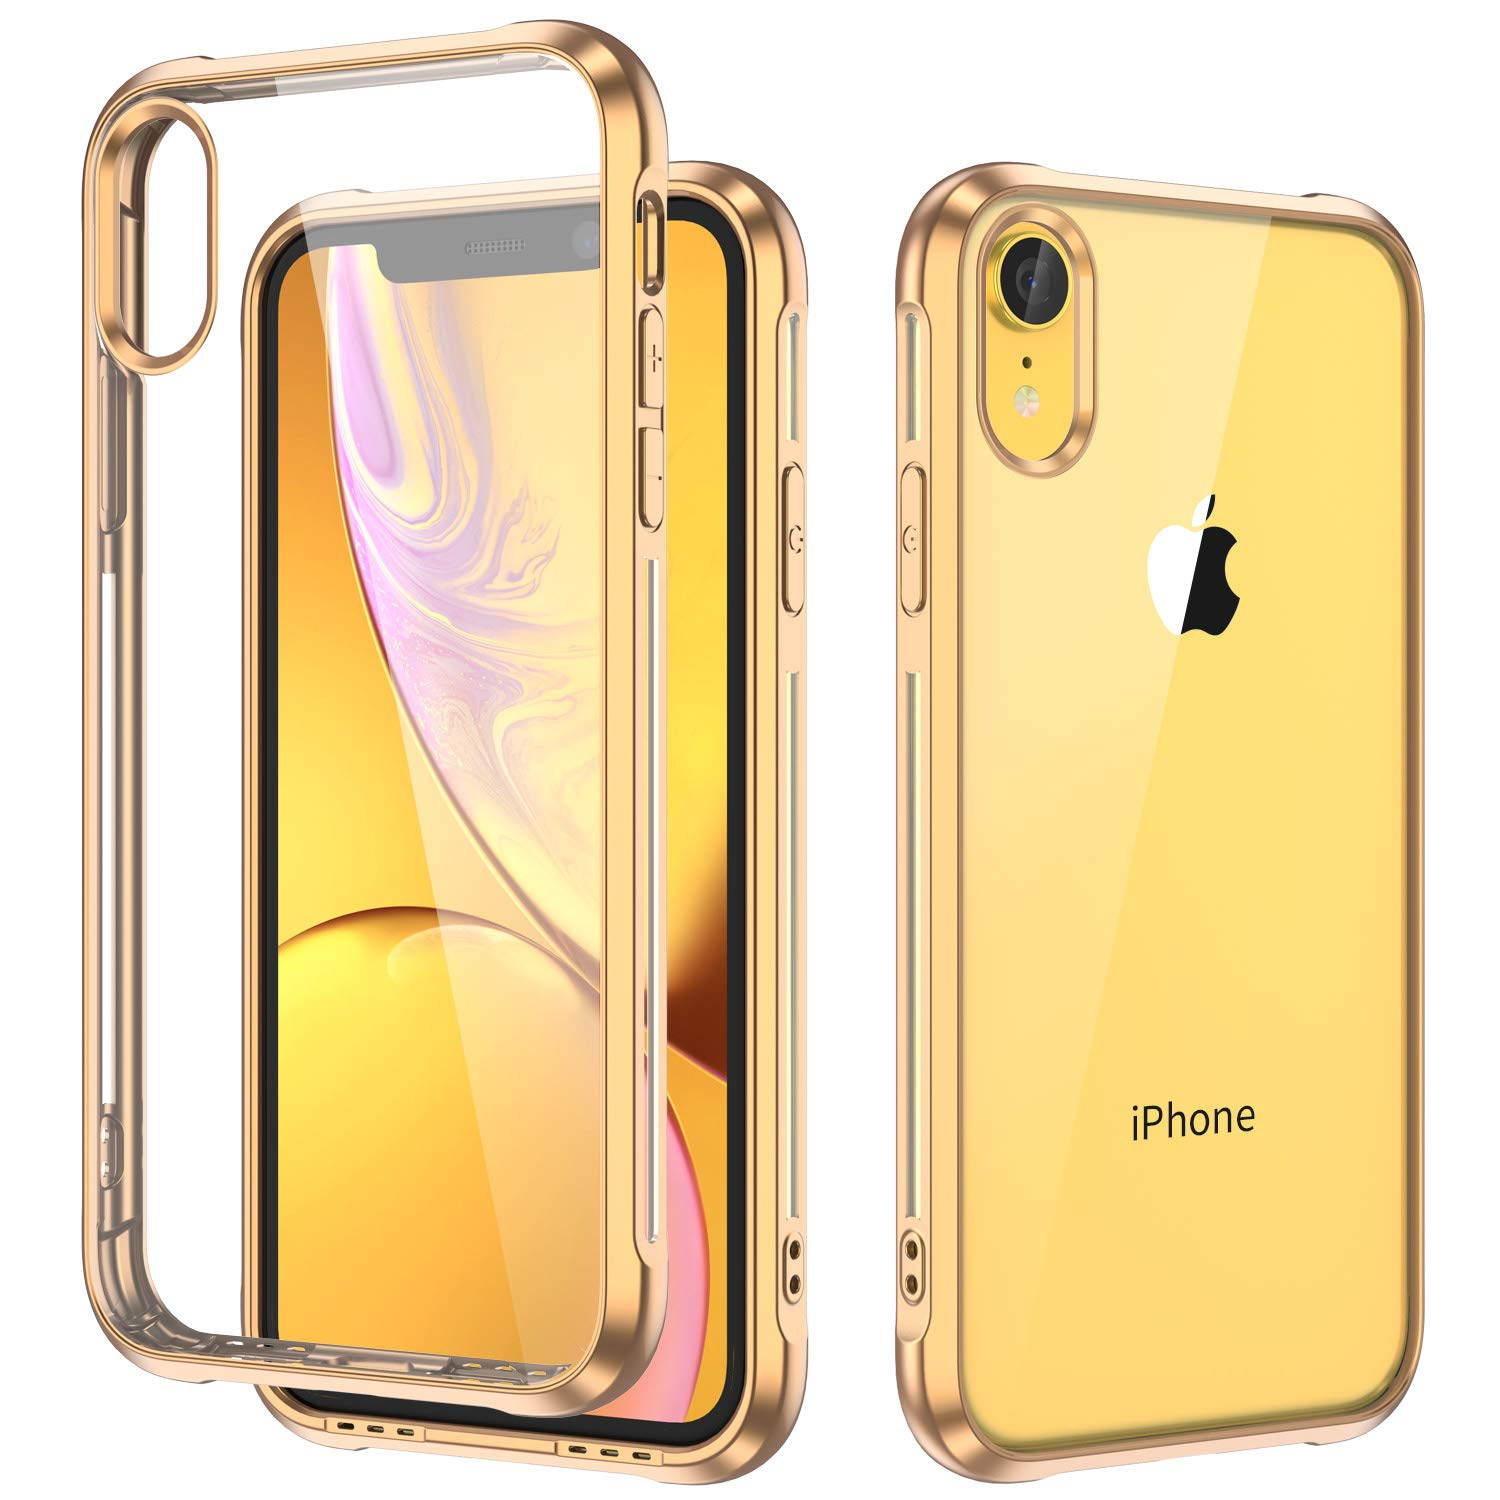 separation shoes 9213b 61cfe ULAK iPhone XR Case Clear Yellow Bumper, Slim Fit Transparent Flexible Soft  TPU Bumper Shock-Absorption Cover for Apple iPhone XR Case (2018)-Retail ...